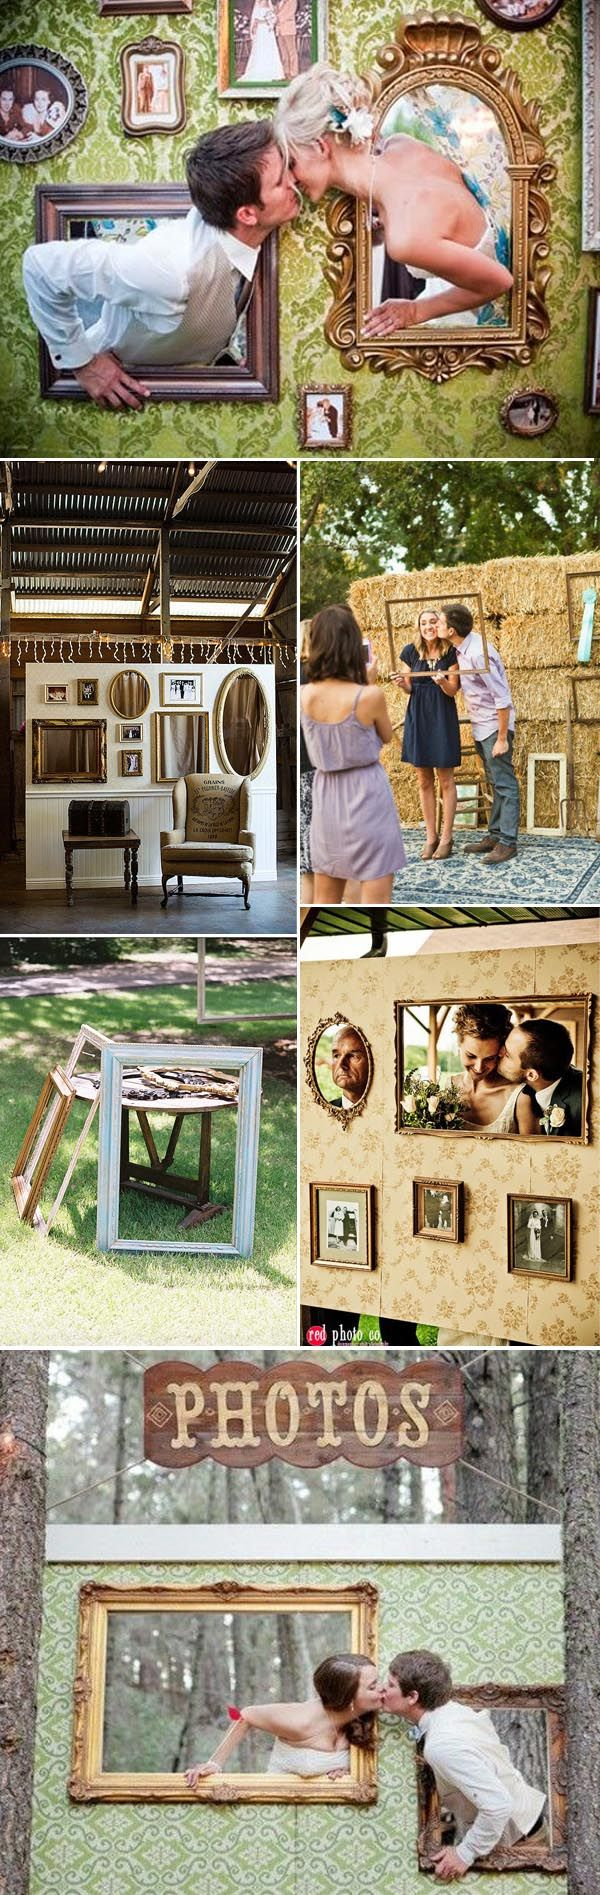 best 25 vintage weddings ideas on pinterest wedding ideas